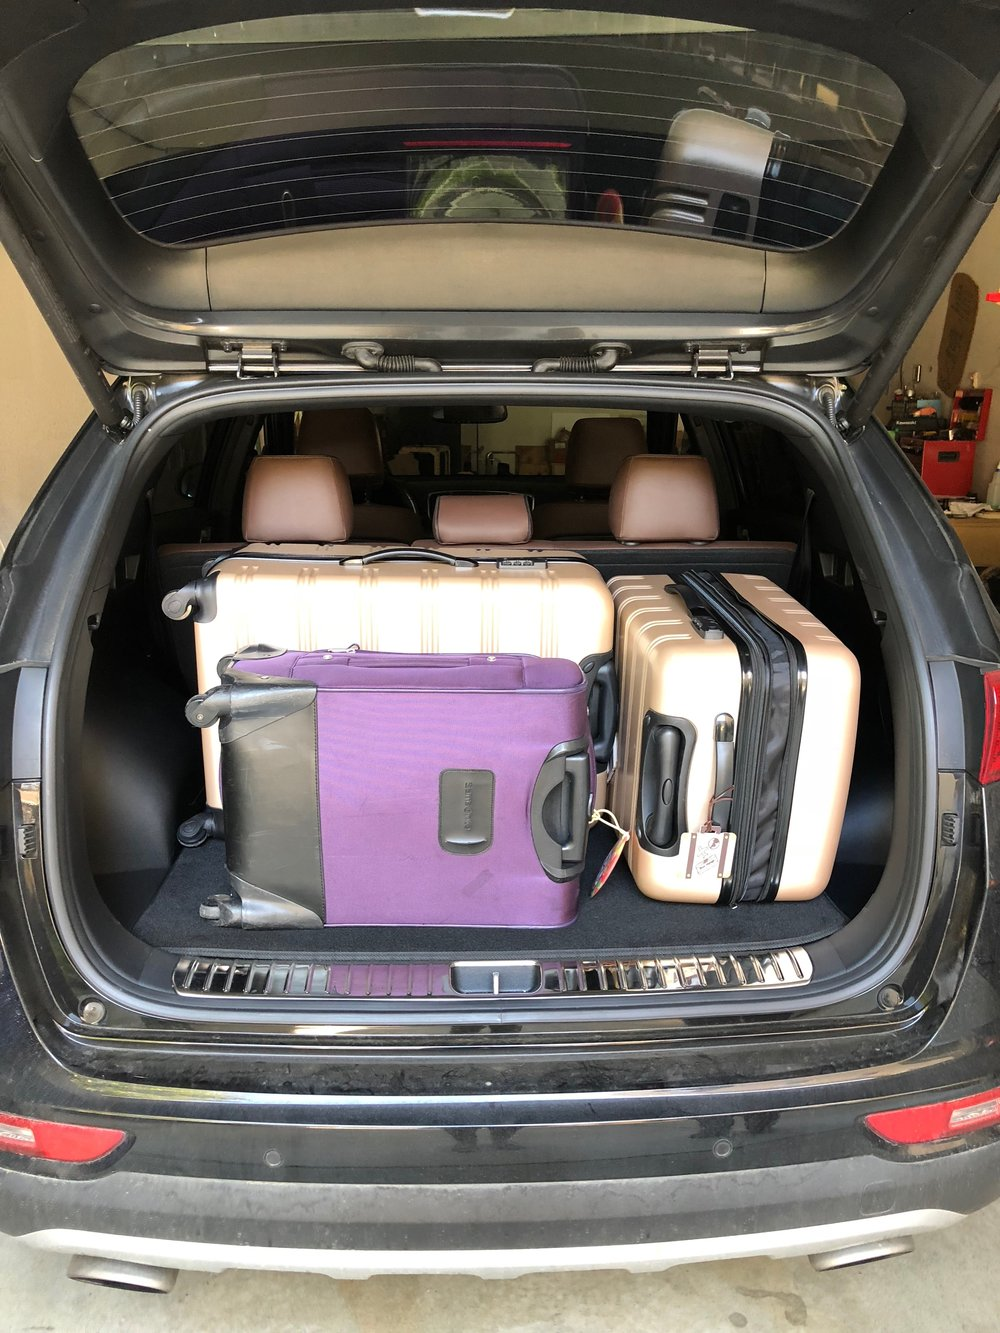 Hitting the road with a car full of suitcases.